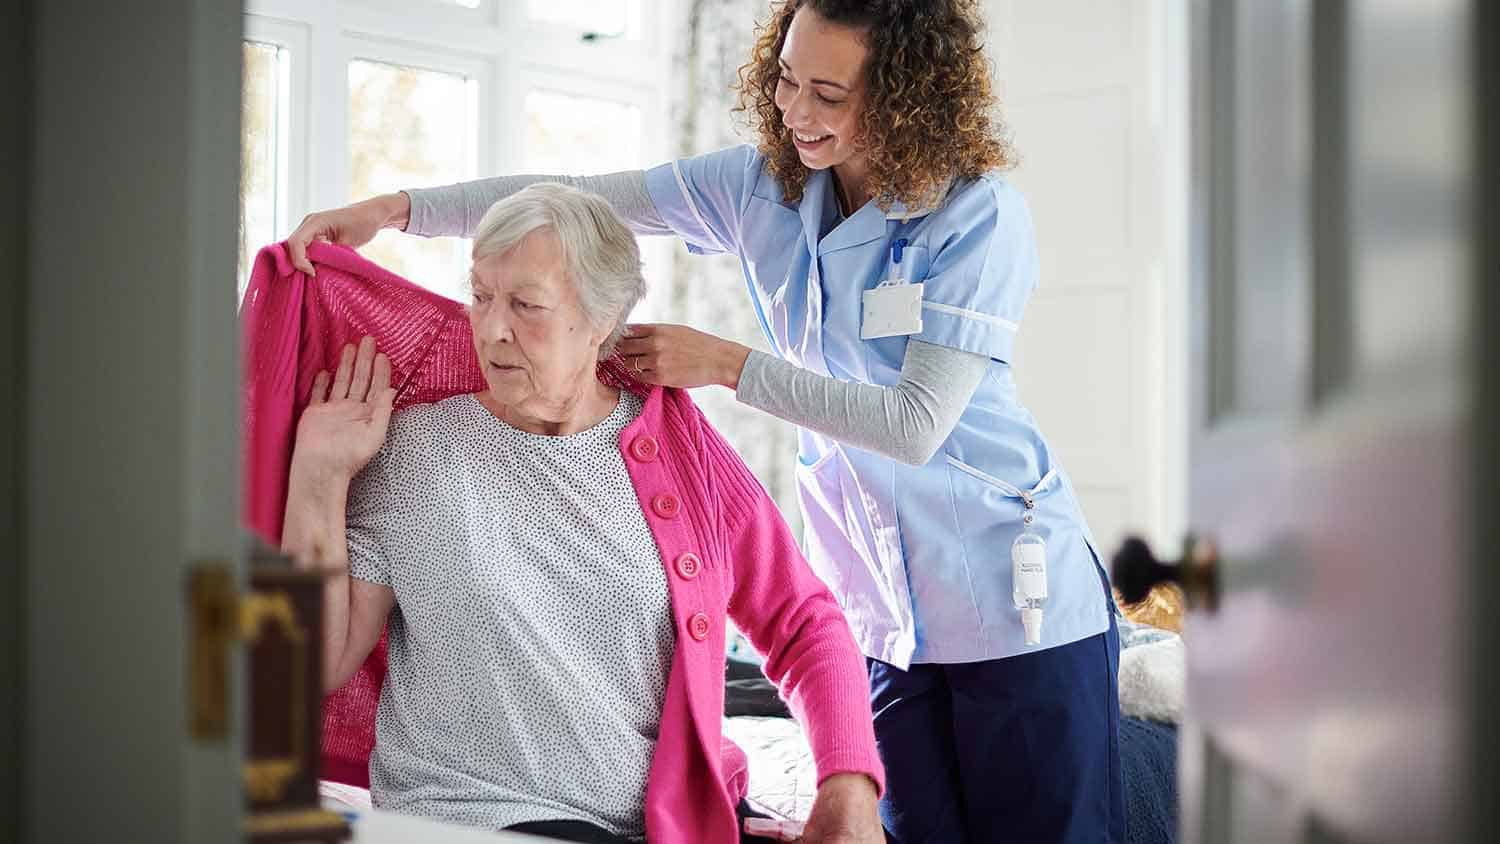 Nurse helping an older lady with a cardigan